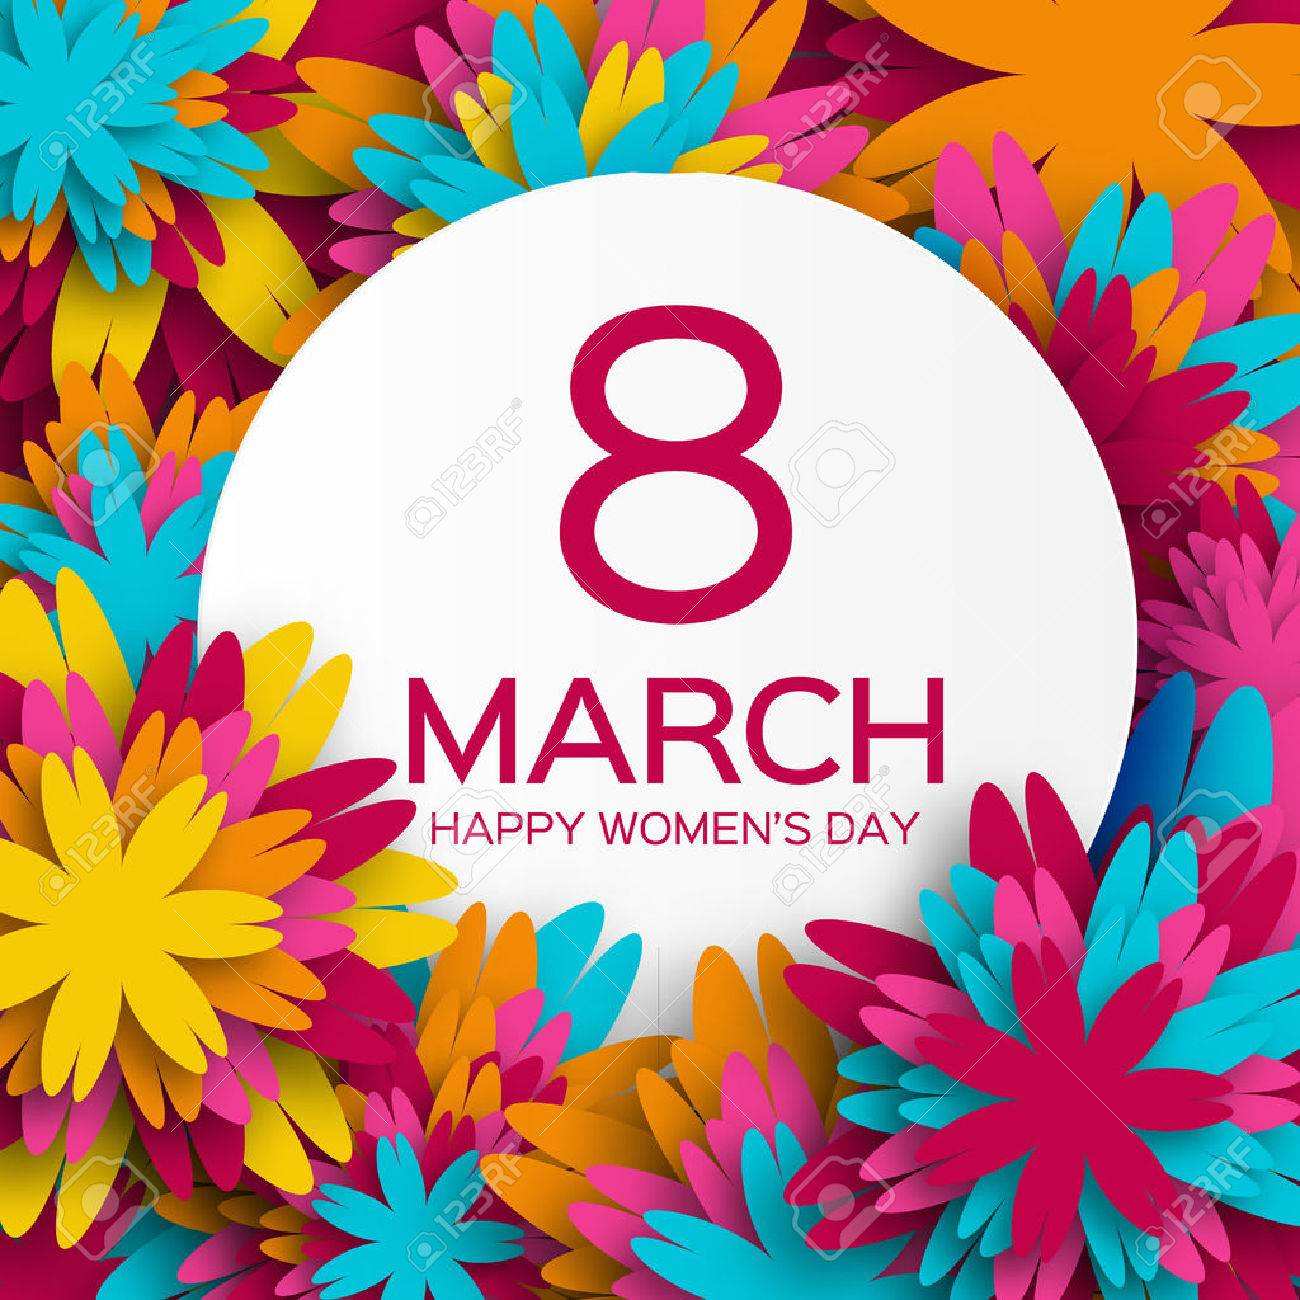 Abstract Colorful Floral Greeting card - International Happy Women's Day - 8 March holiday background with paper cut Frame Flowers. - 52890339